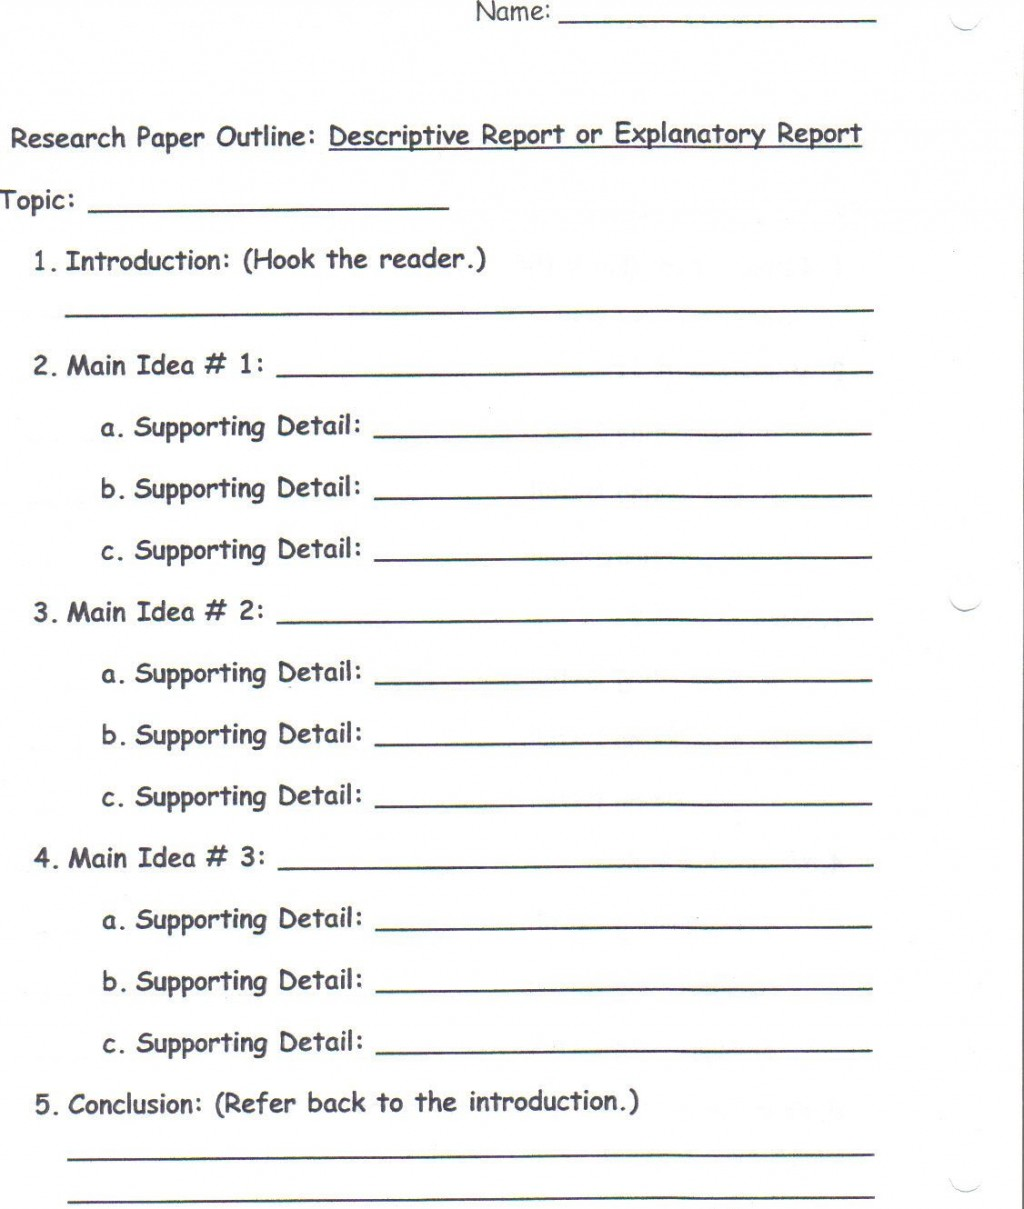 025 Research Paper Topic Idea Awesome Ideas 2019 Economics For Middle School Students Large